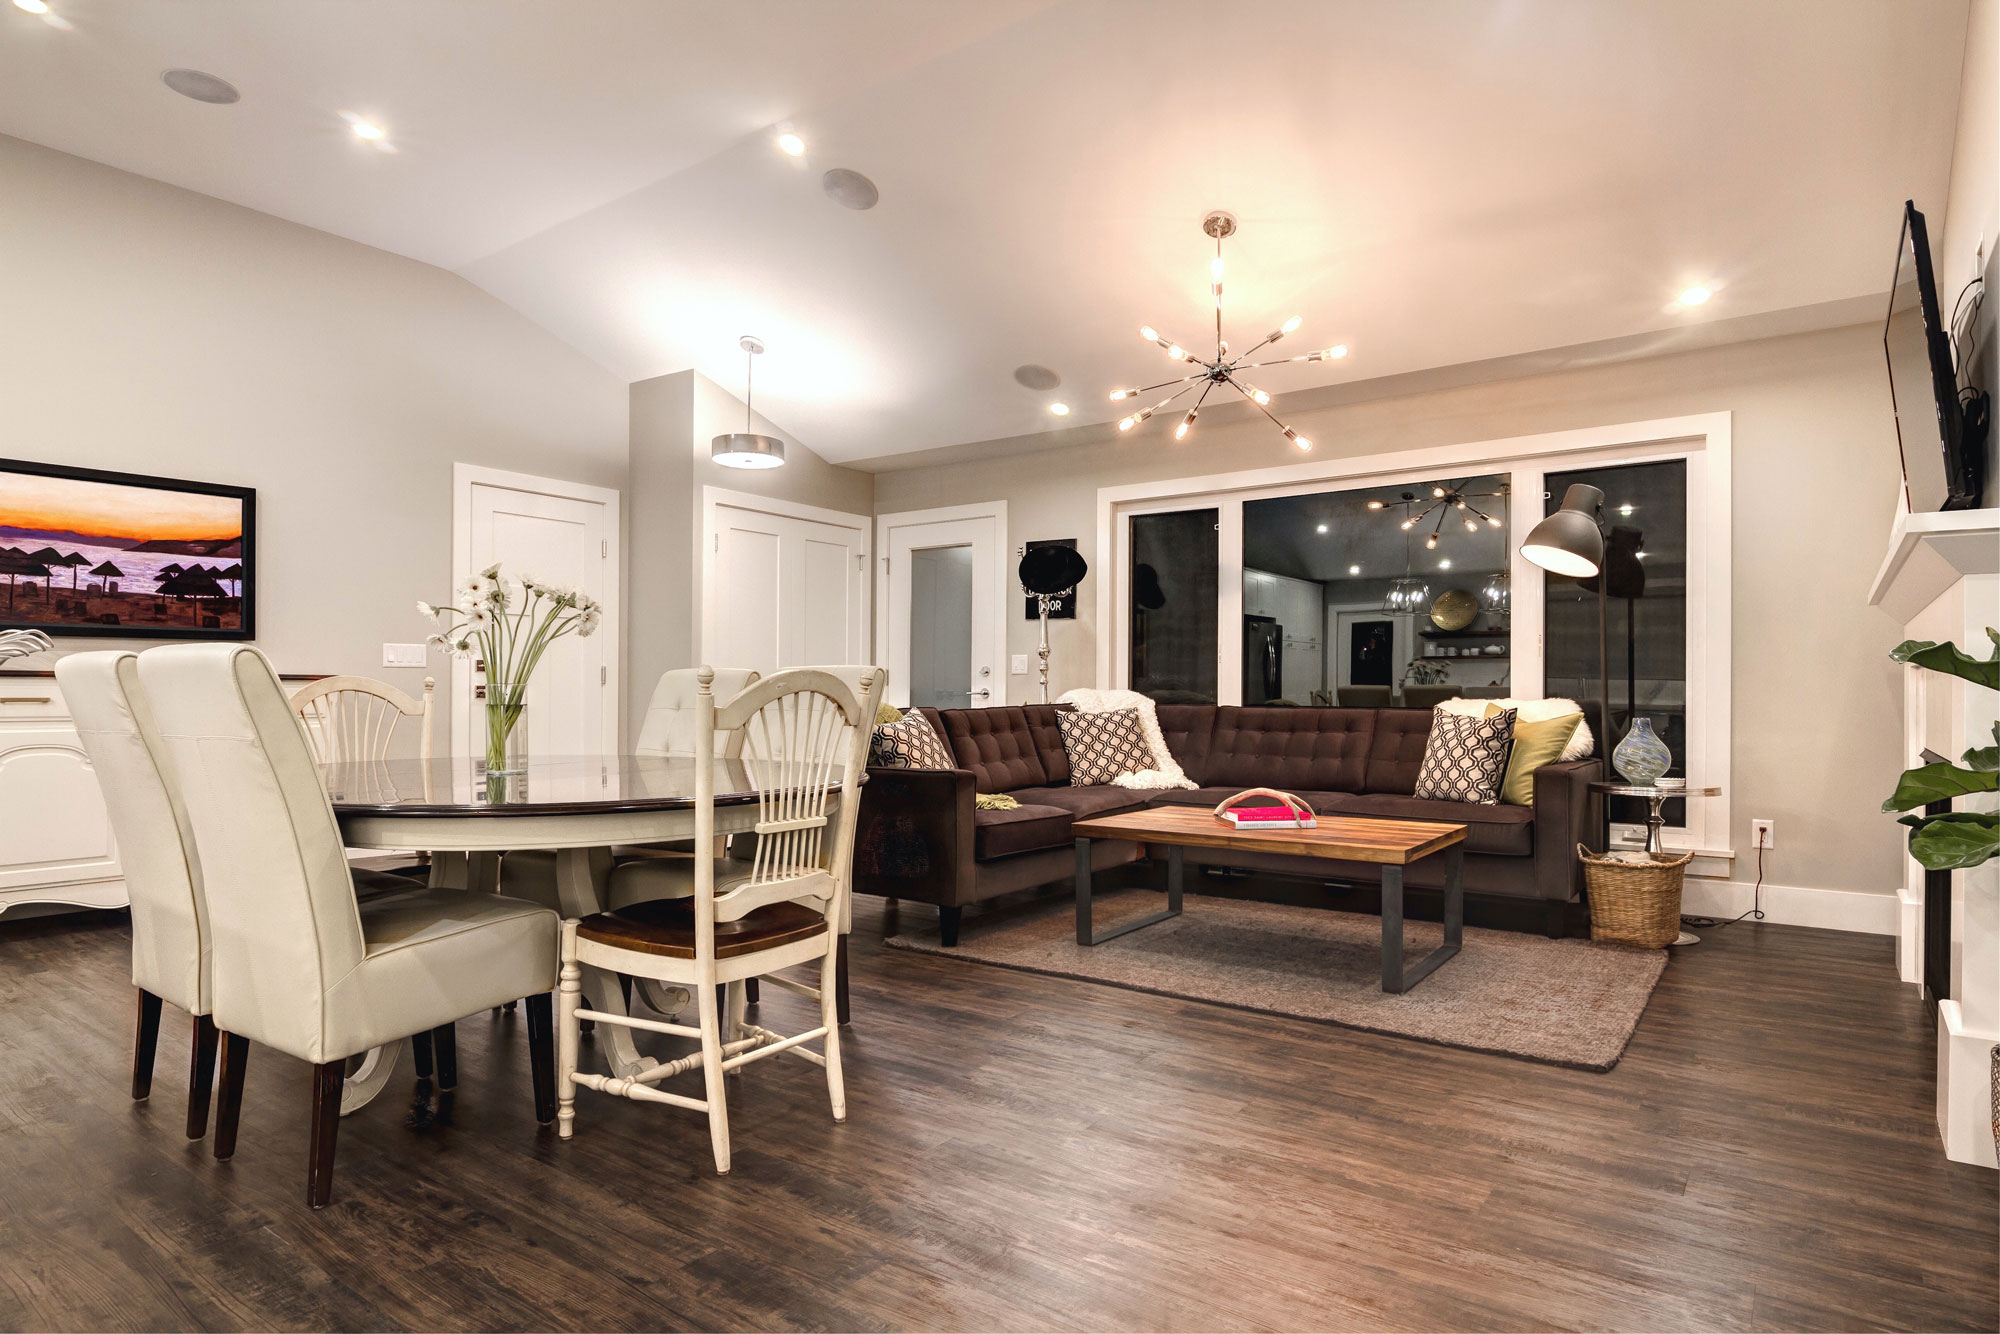 Living Room with Hardwood Floors remodel by Style Developments in Calgary Alberta